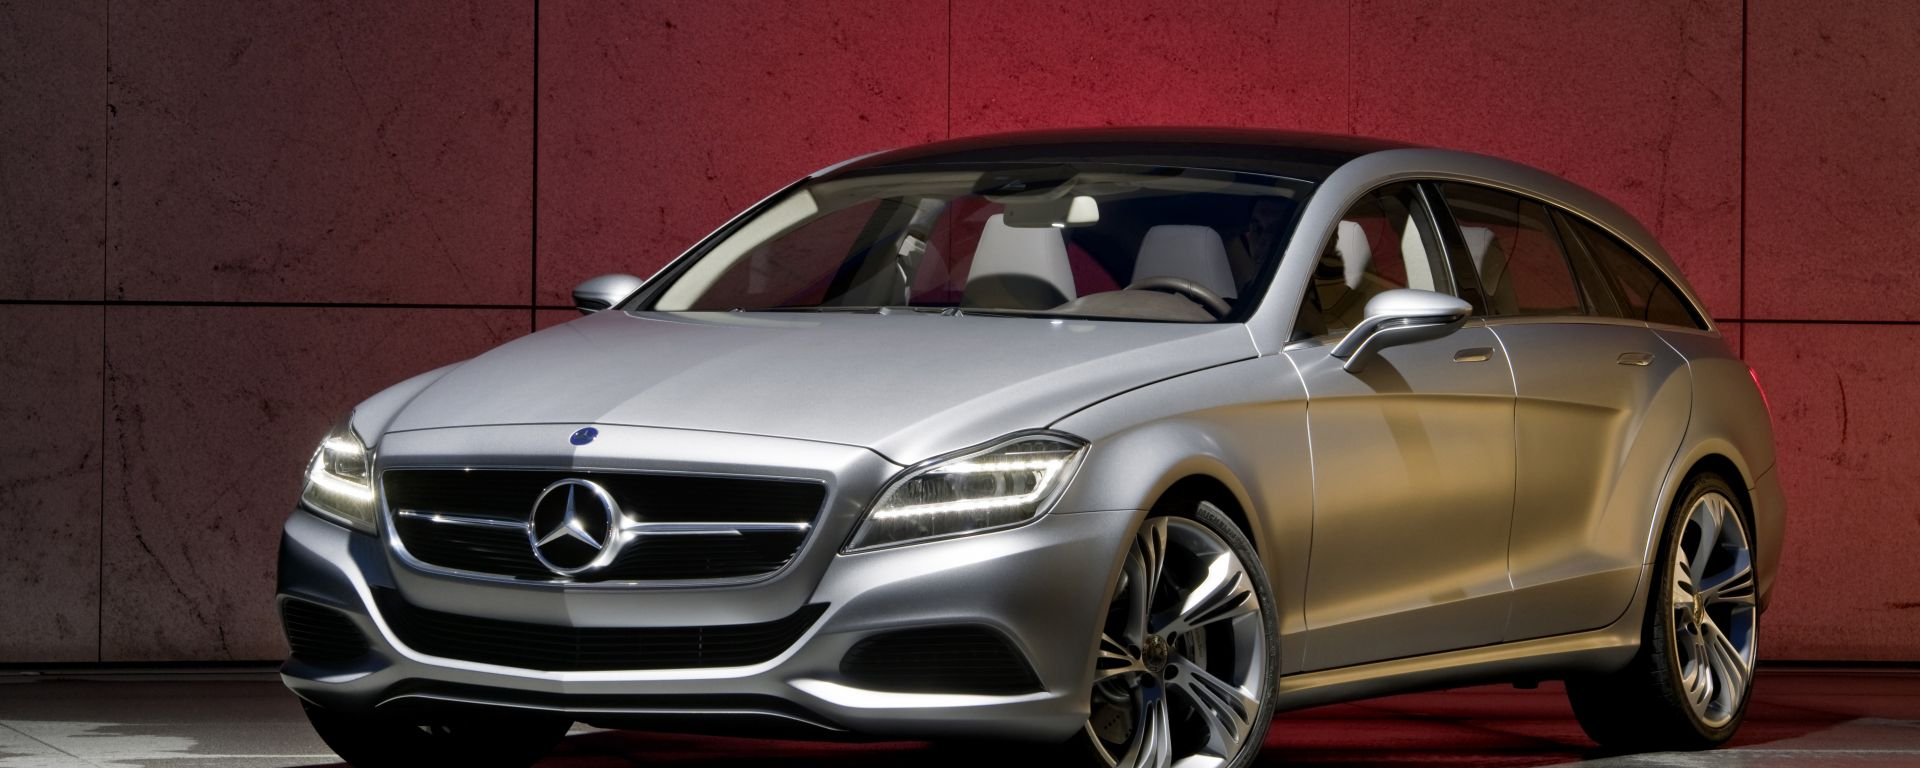 Mercedes CLS Shooting Brake Concept